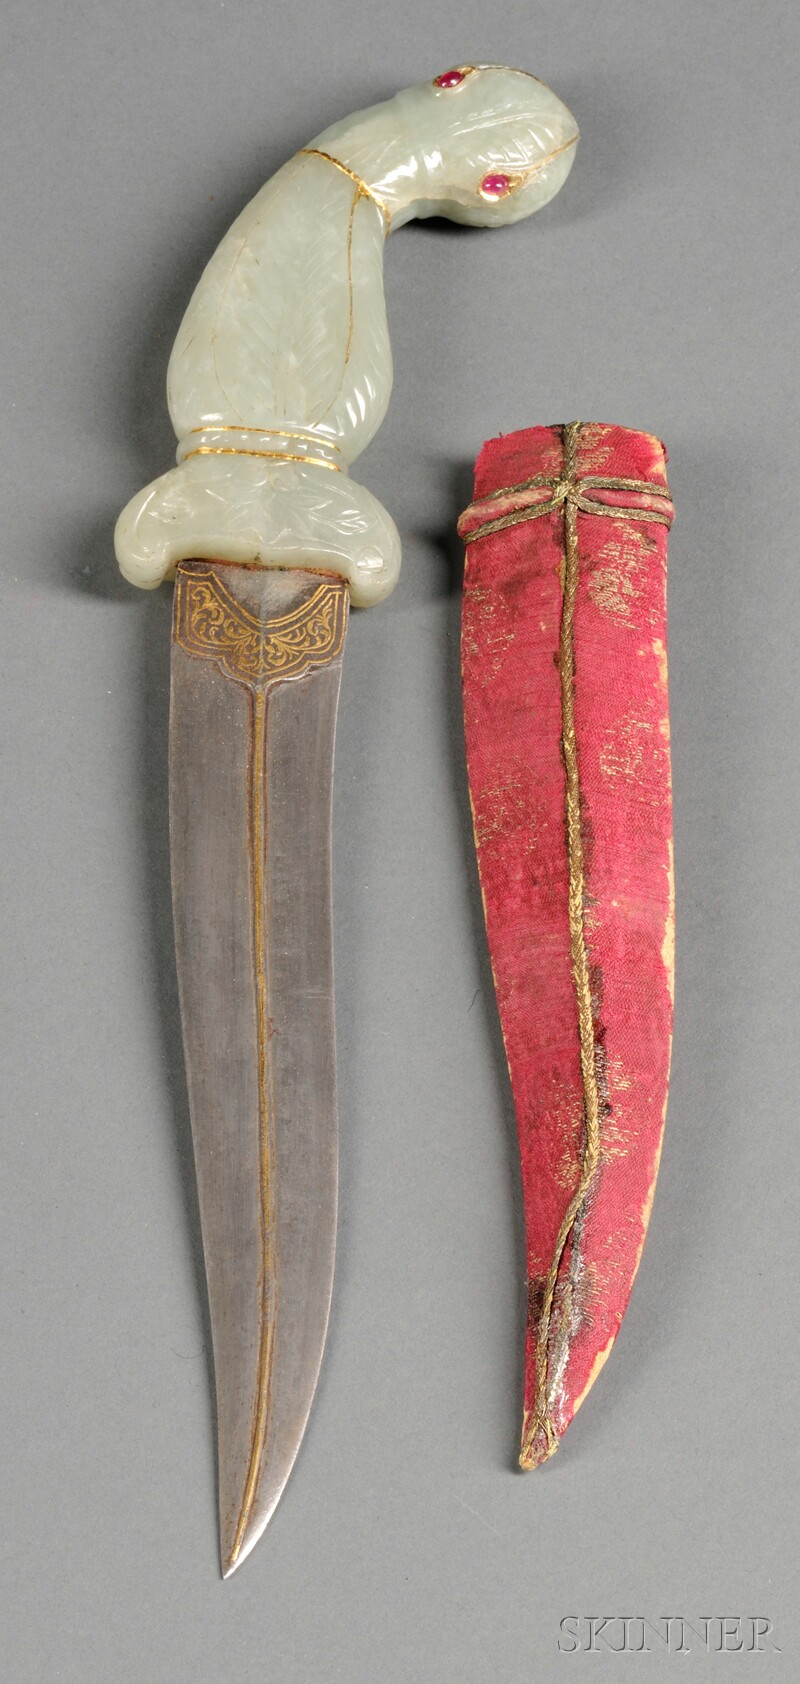 Jade-handled Dagger with Scabbard